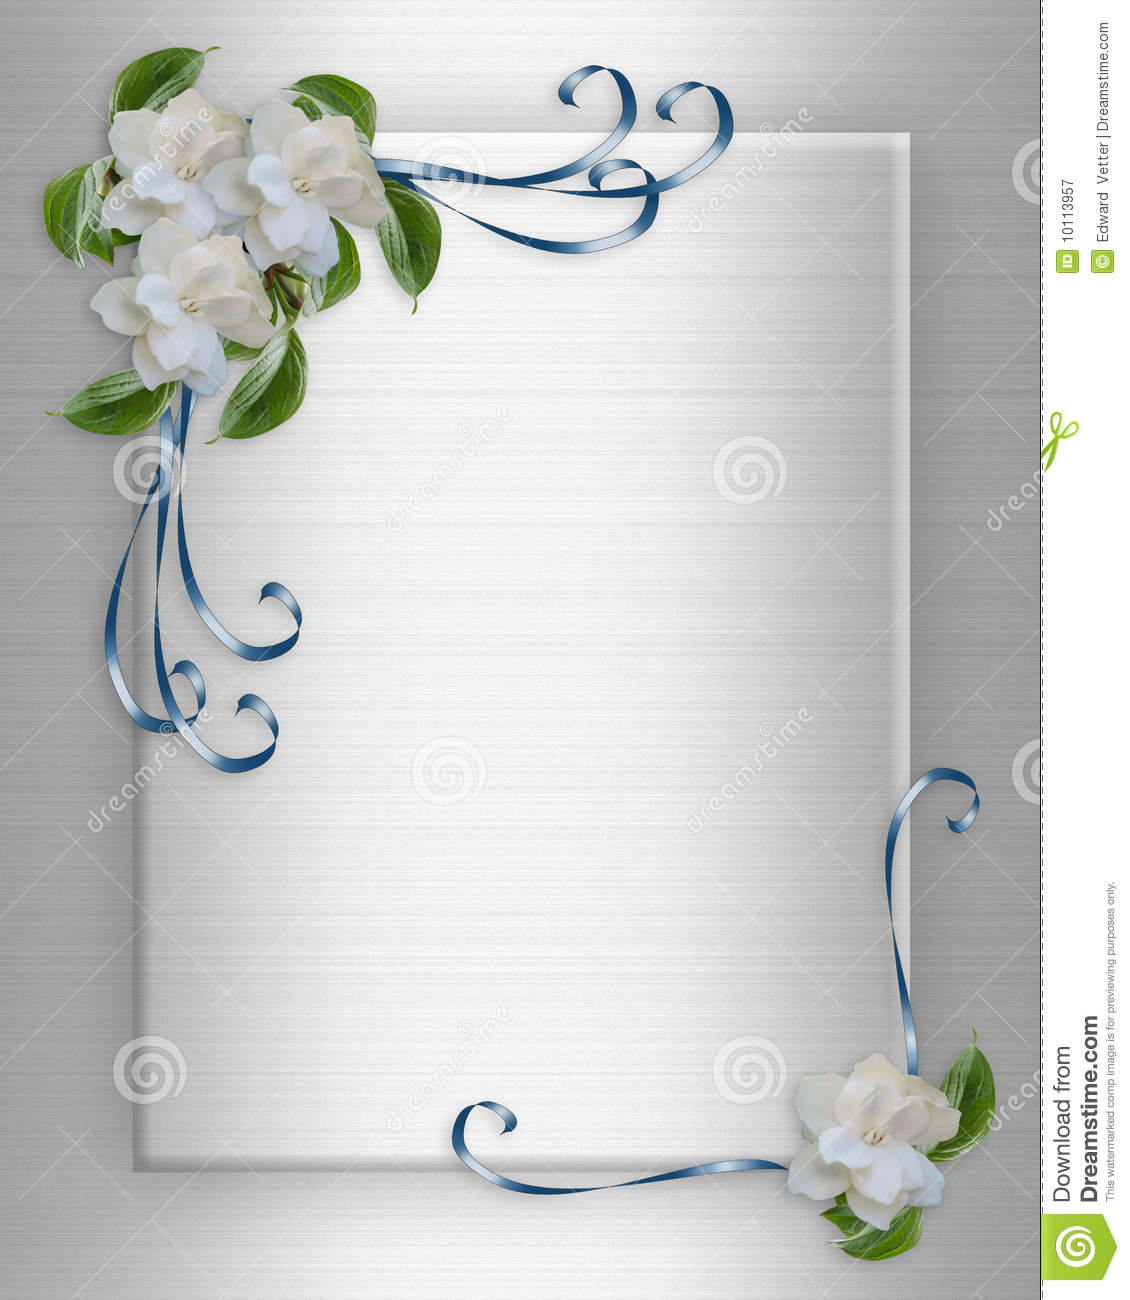 Wedding Invitation Border Gardenias Royalty Free Stock